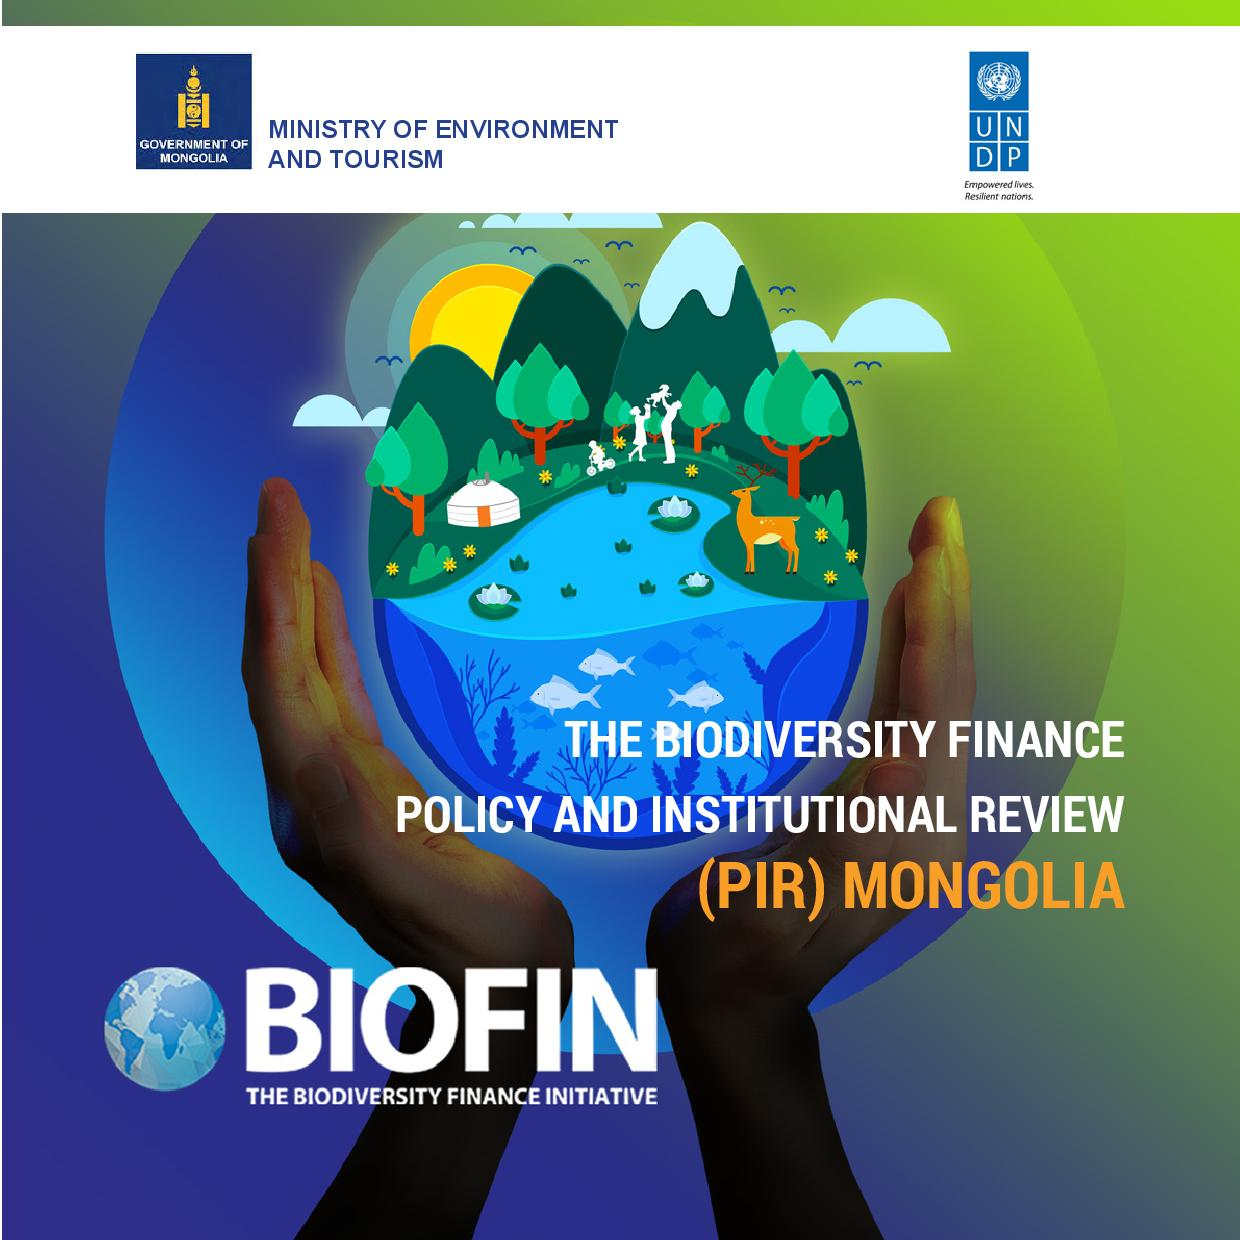 Mongolia: Biodiversity Finance Policy and Institutional Review (PIR)